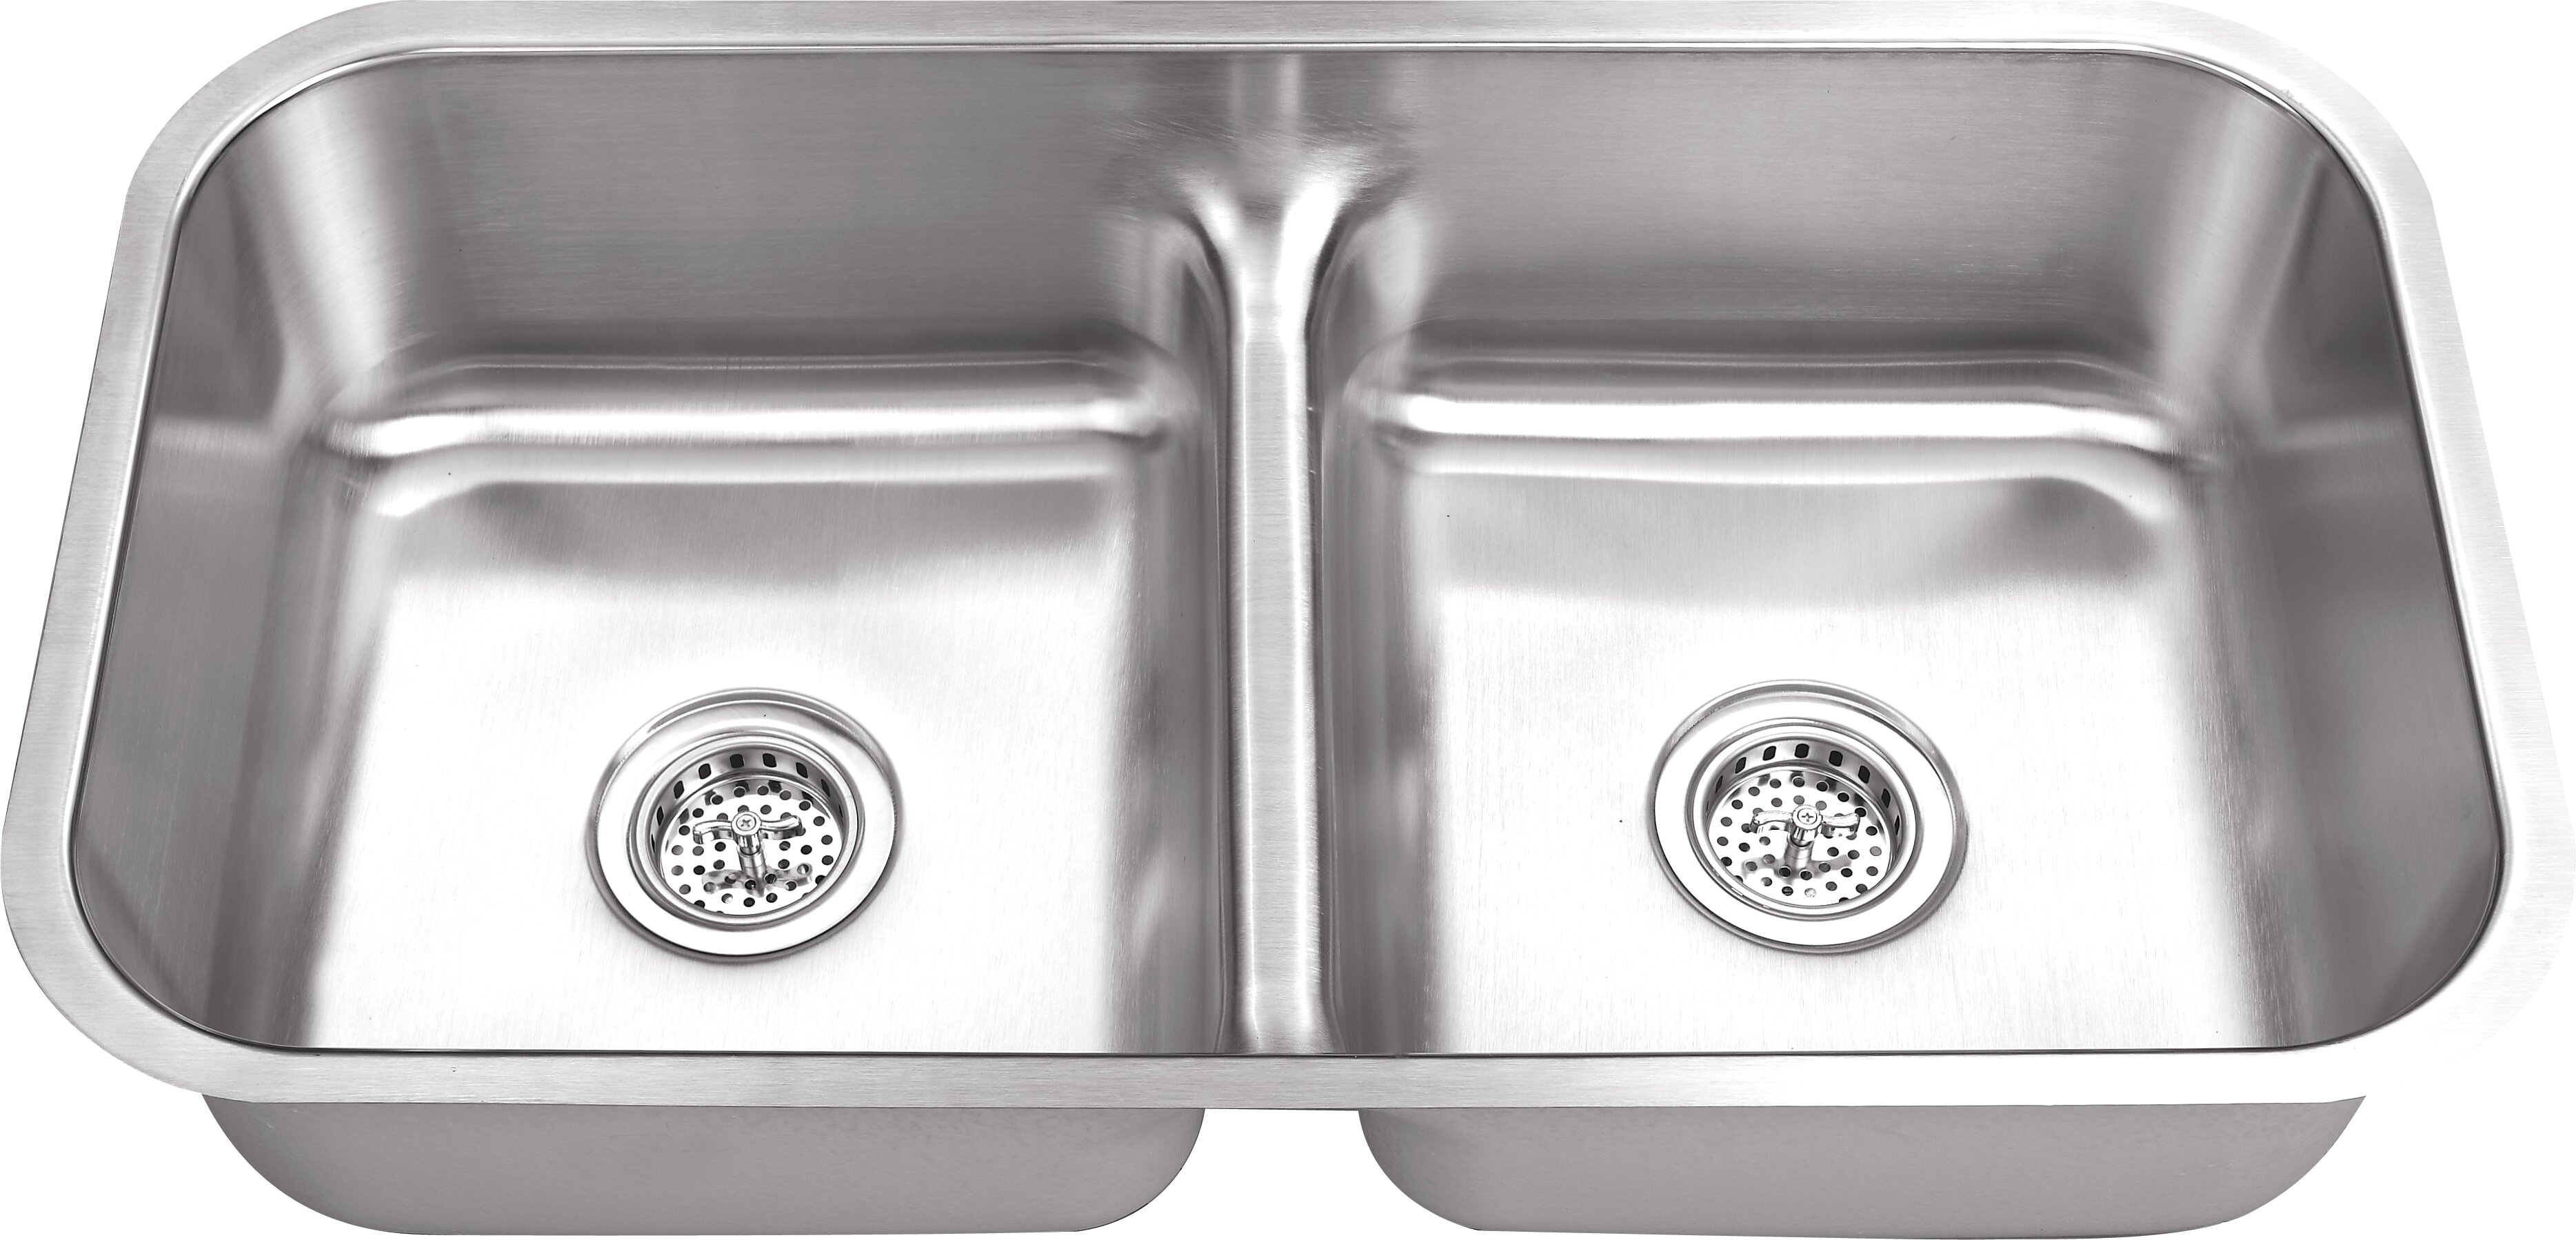 Cozy Kitchen Sinks Stainless Steel for Traditional Kitchen Design: Kitchen Sinks Stainless Steel | Wholesale Kitchen Sinks Stainless Steel | Stainless Steel Farmhouse Kitchen Sinks